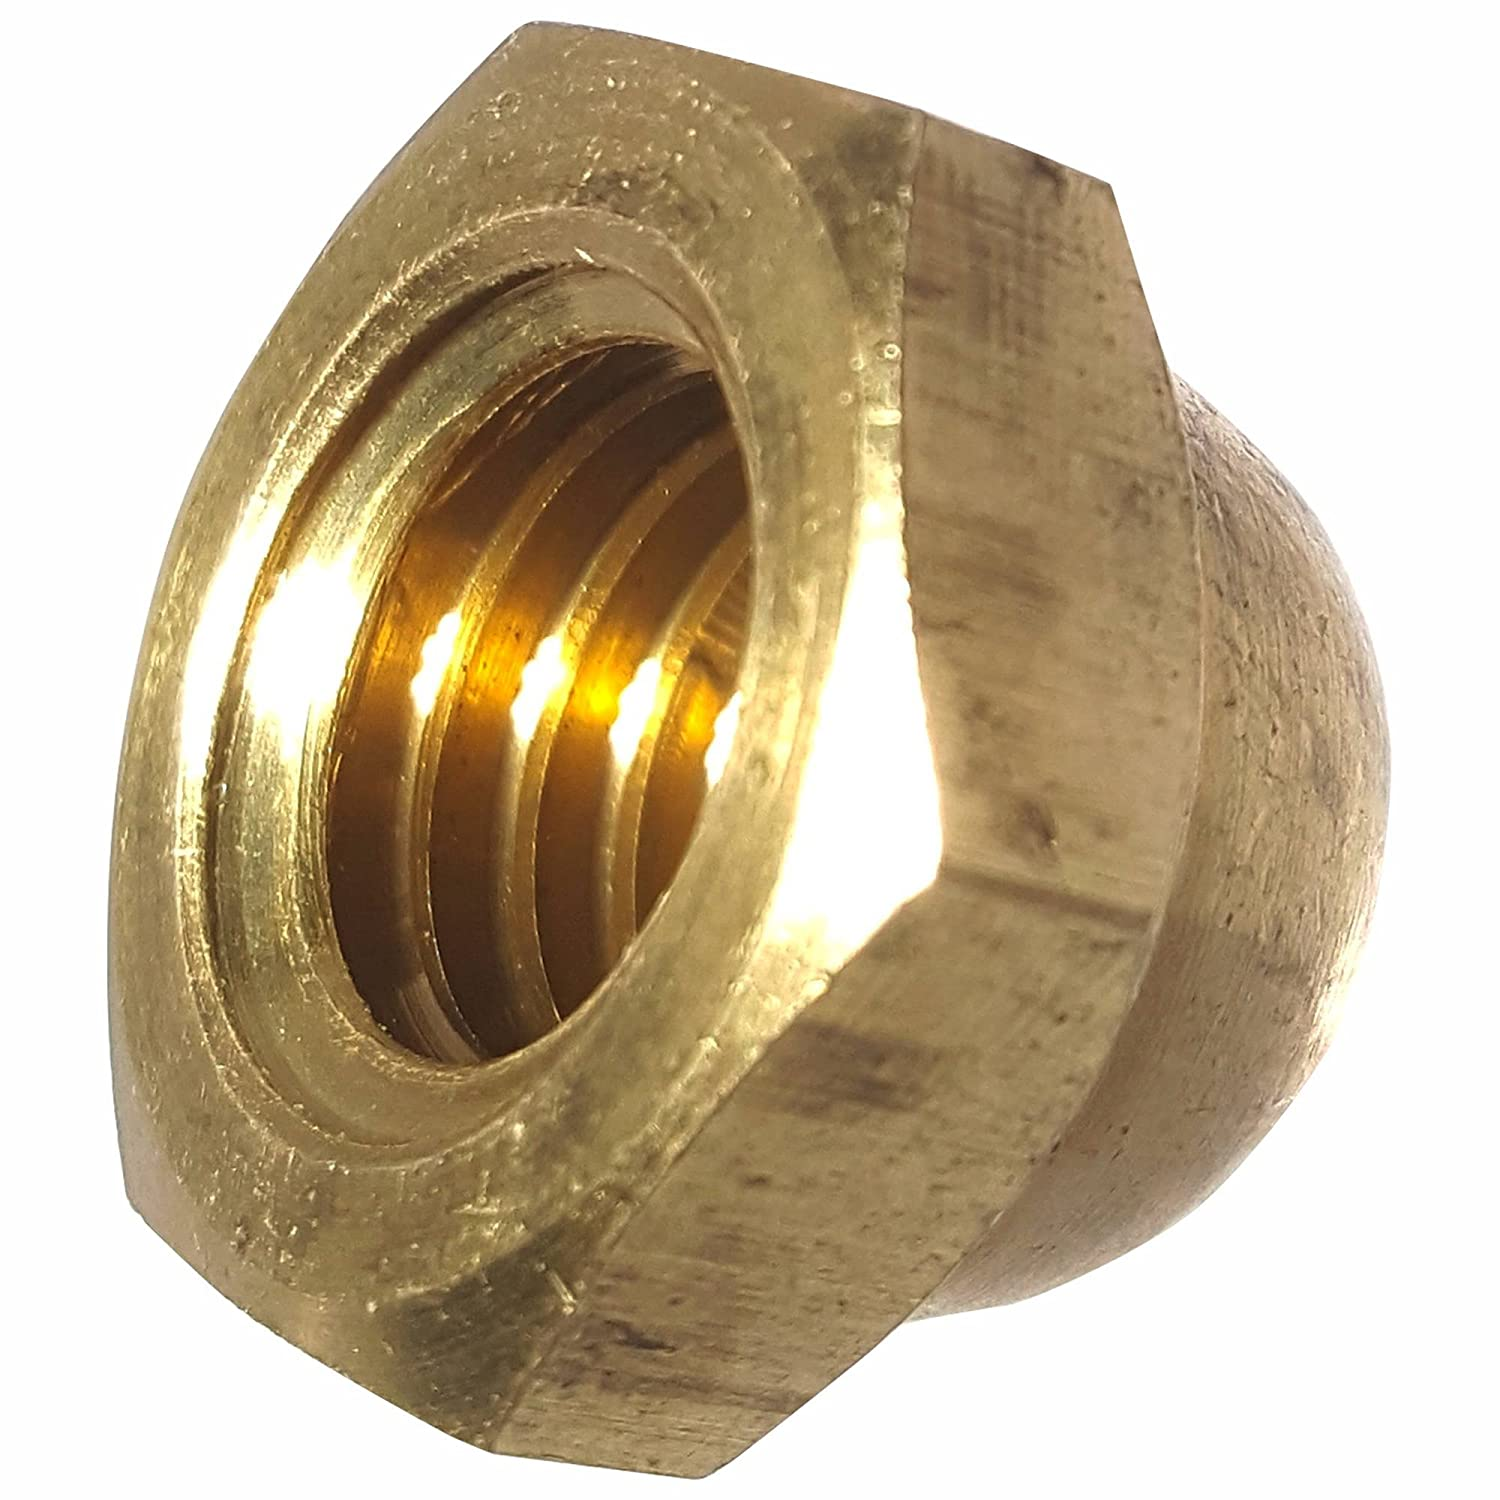 Quantity 50 Fastenere Solid Brass 8-32 Hex Cap Nuts Grade 360 Plain Finish Commercial